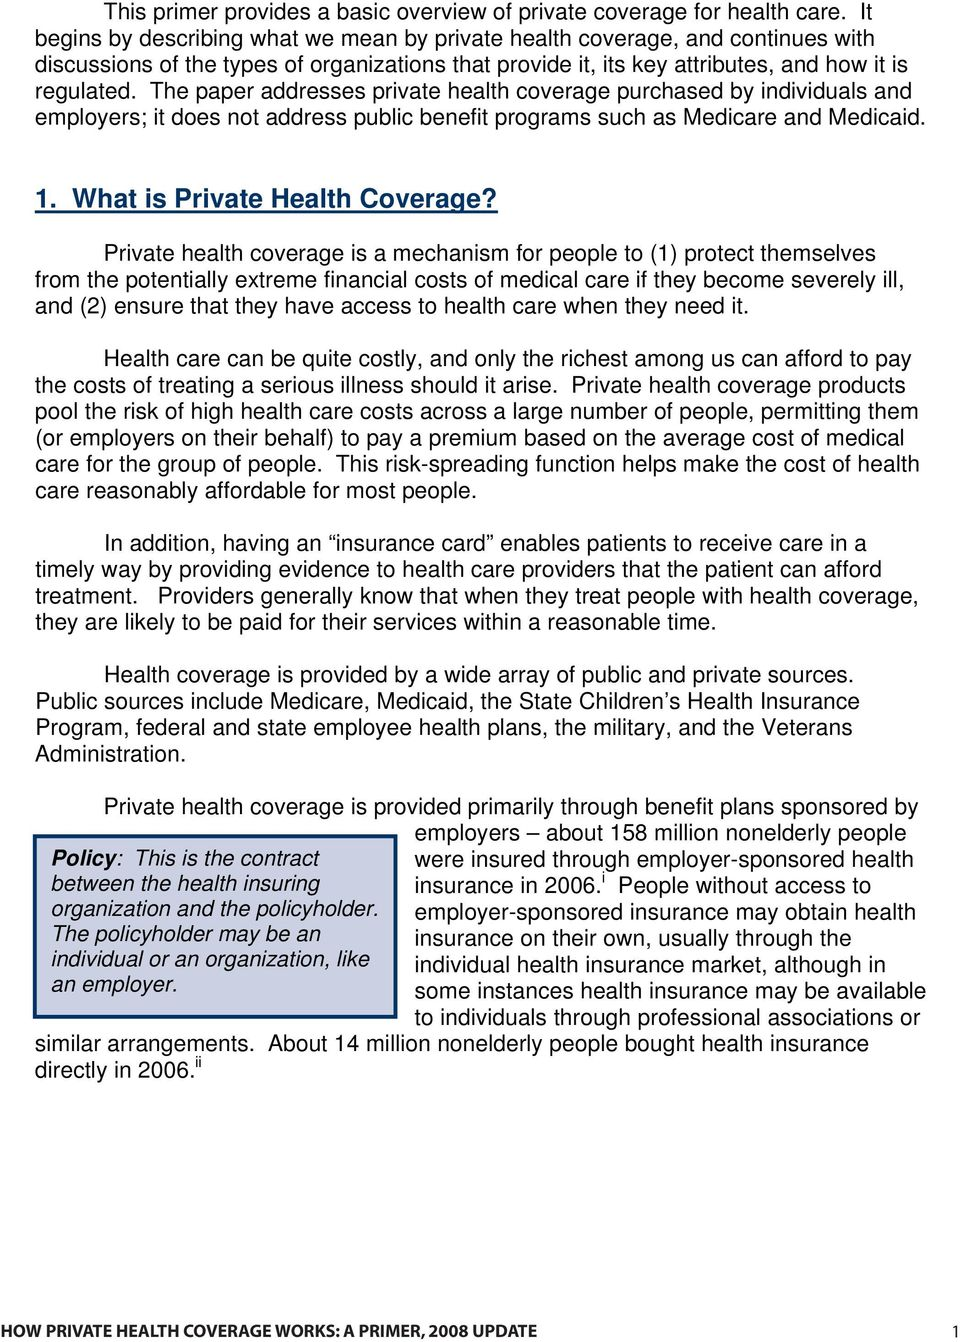 The paper addresses private health coverage purchased by individuals and employers; it does not address public benefit programs such as Medicare and Medicaid. 1. What is Private Health Coverage?